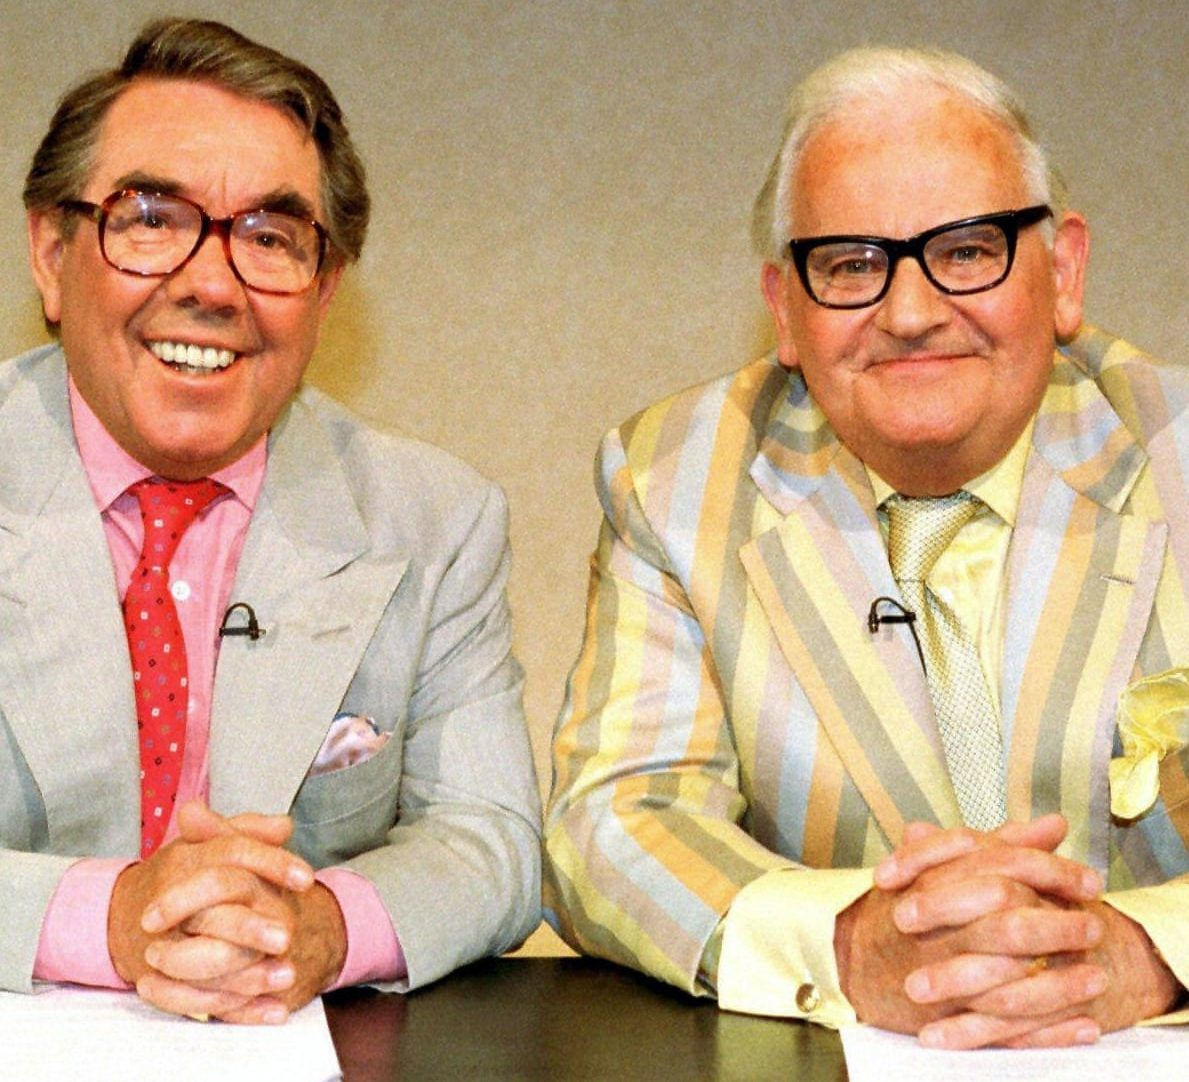 1982 e1622189141229 12 Classic Comedy Shows From When We Grew Up - Which Was Your Favourite?